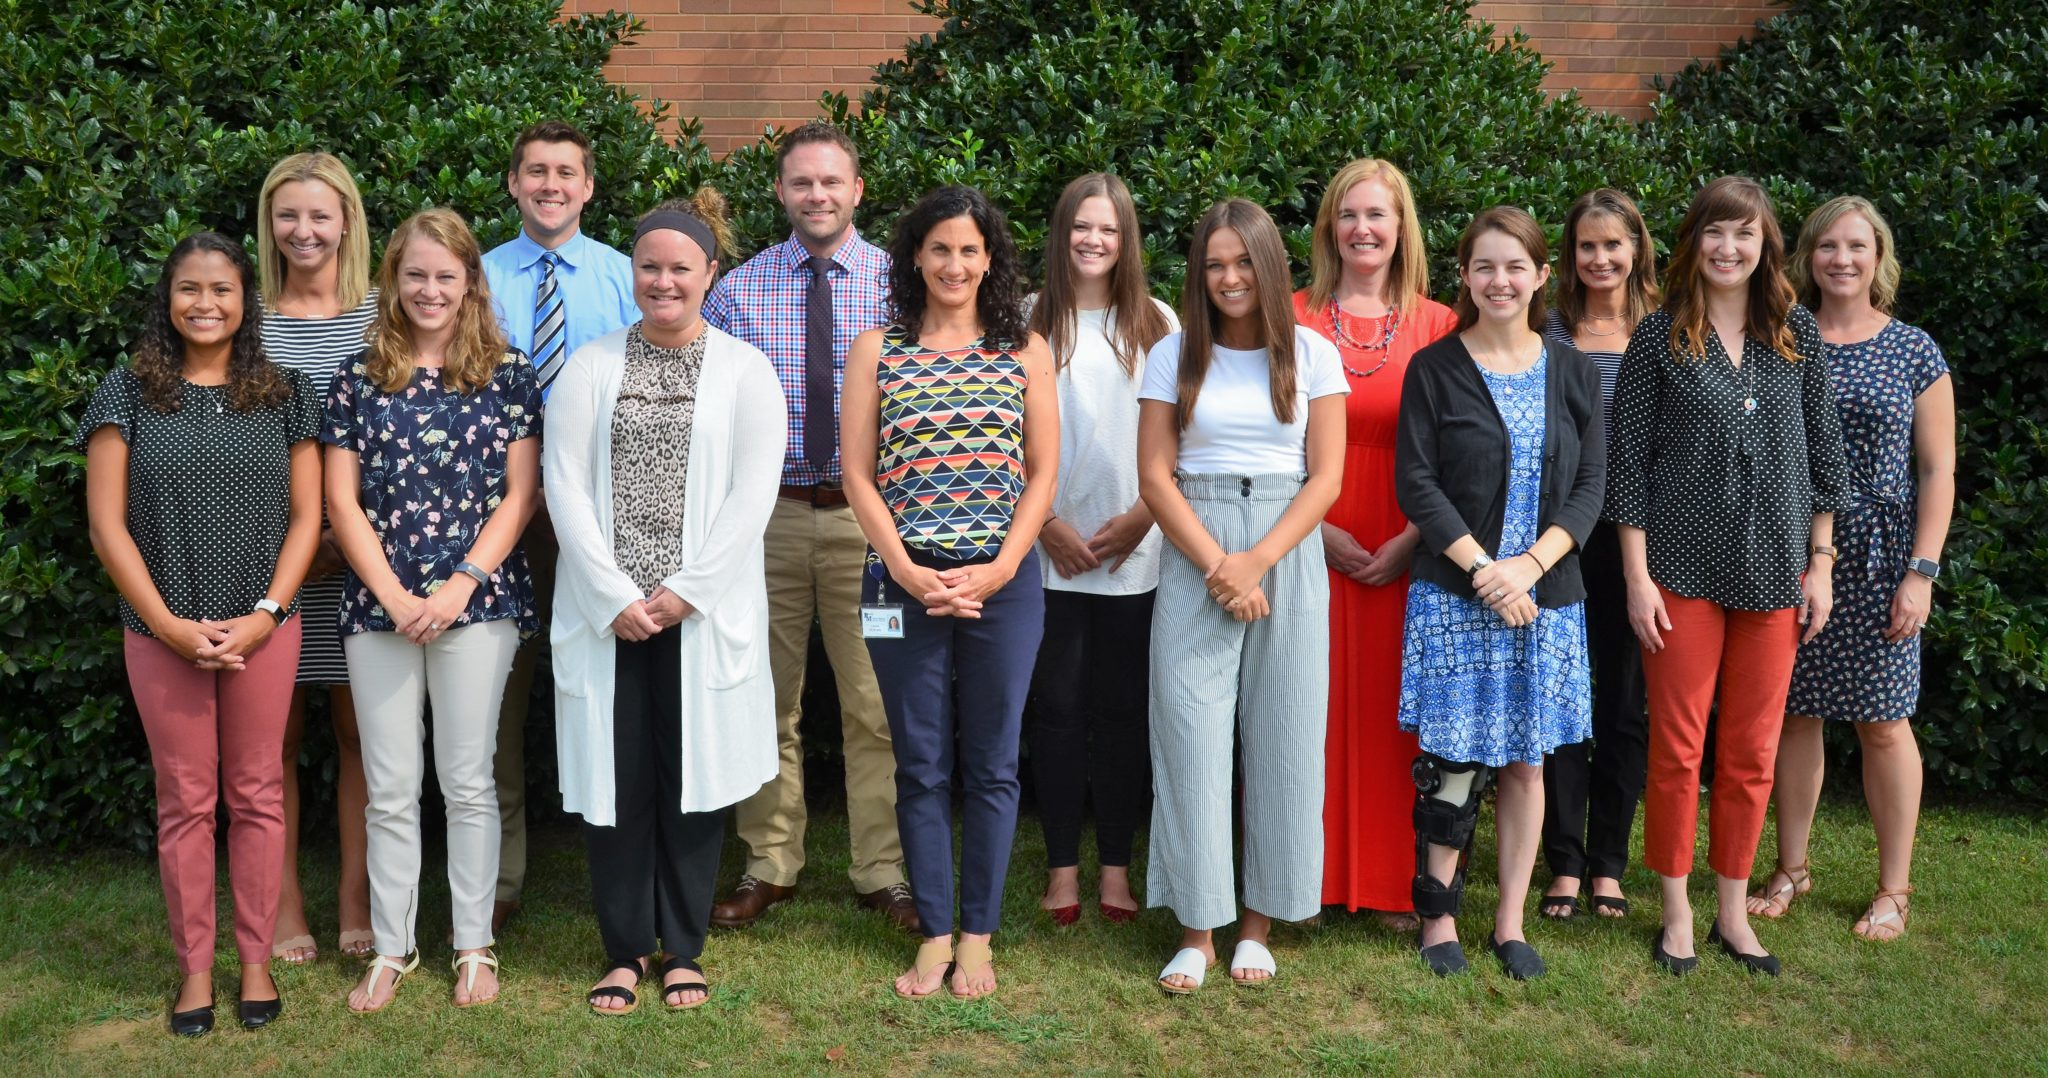 Group shot of new teachers